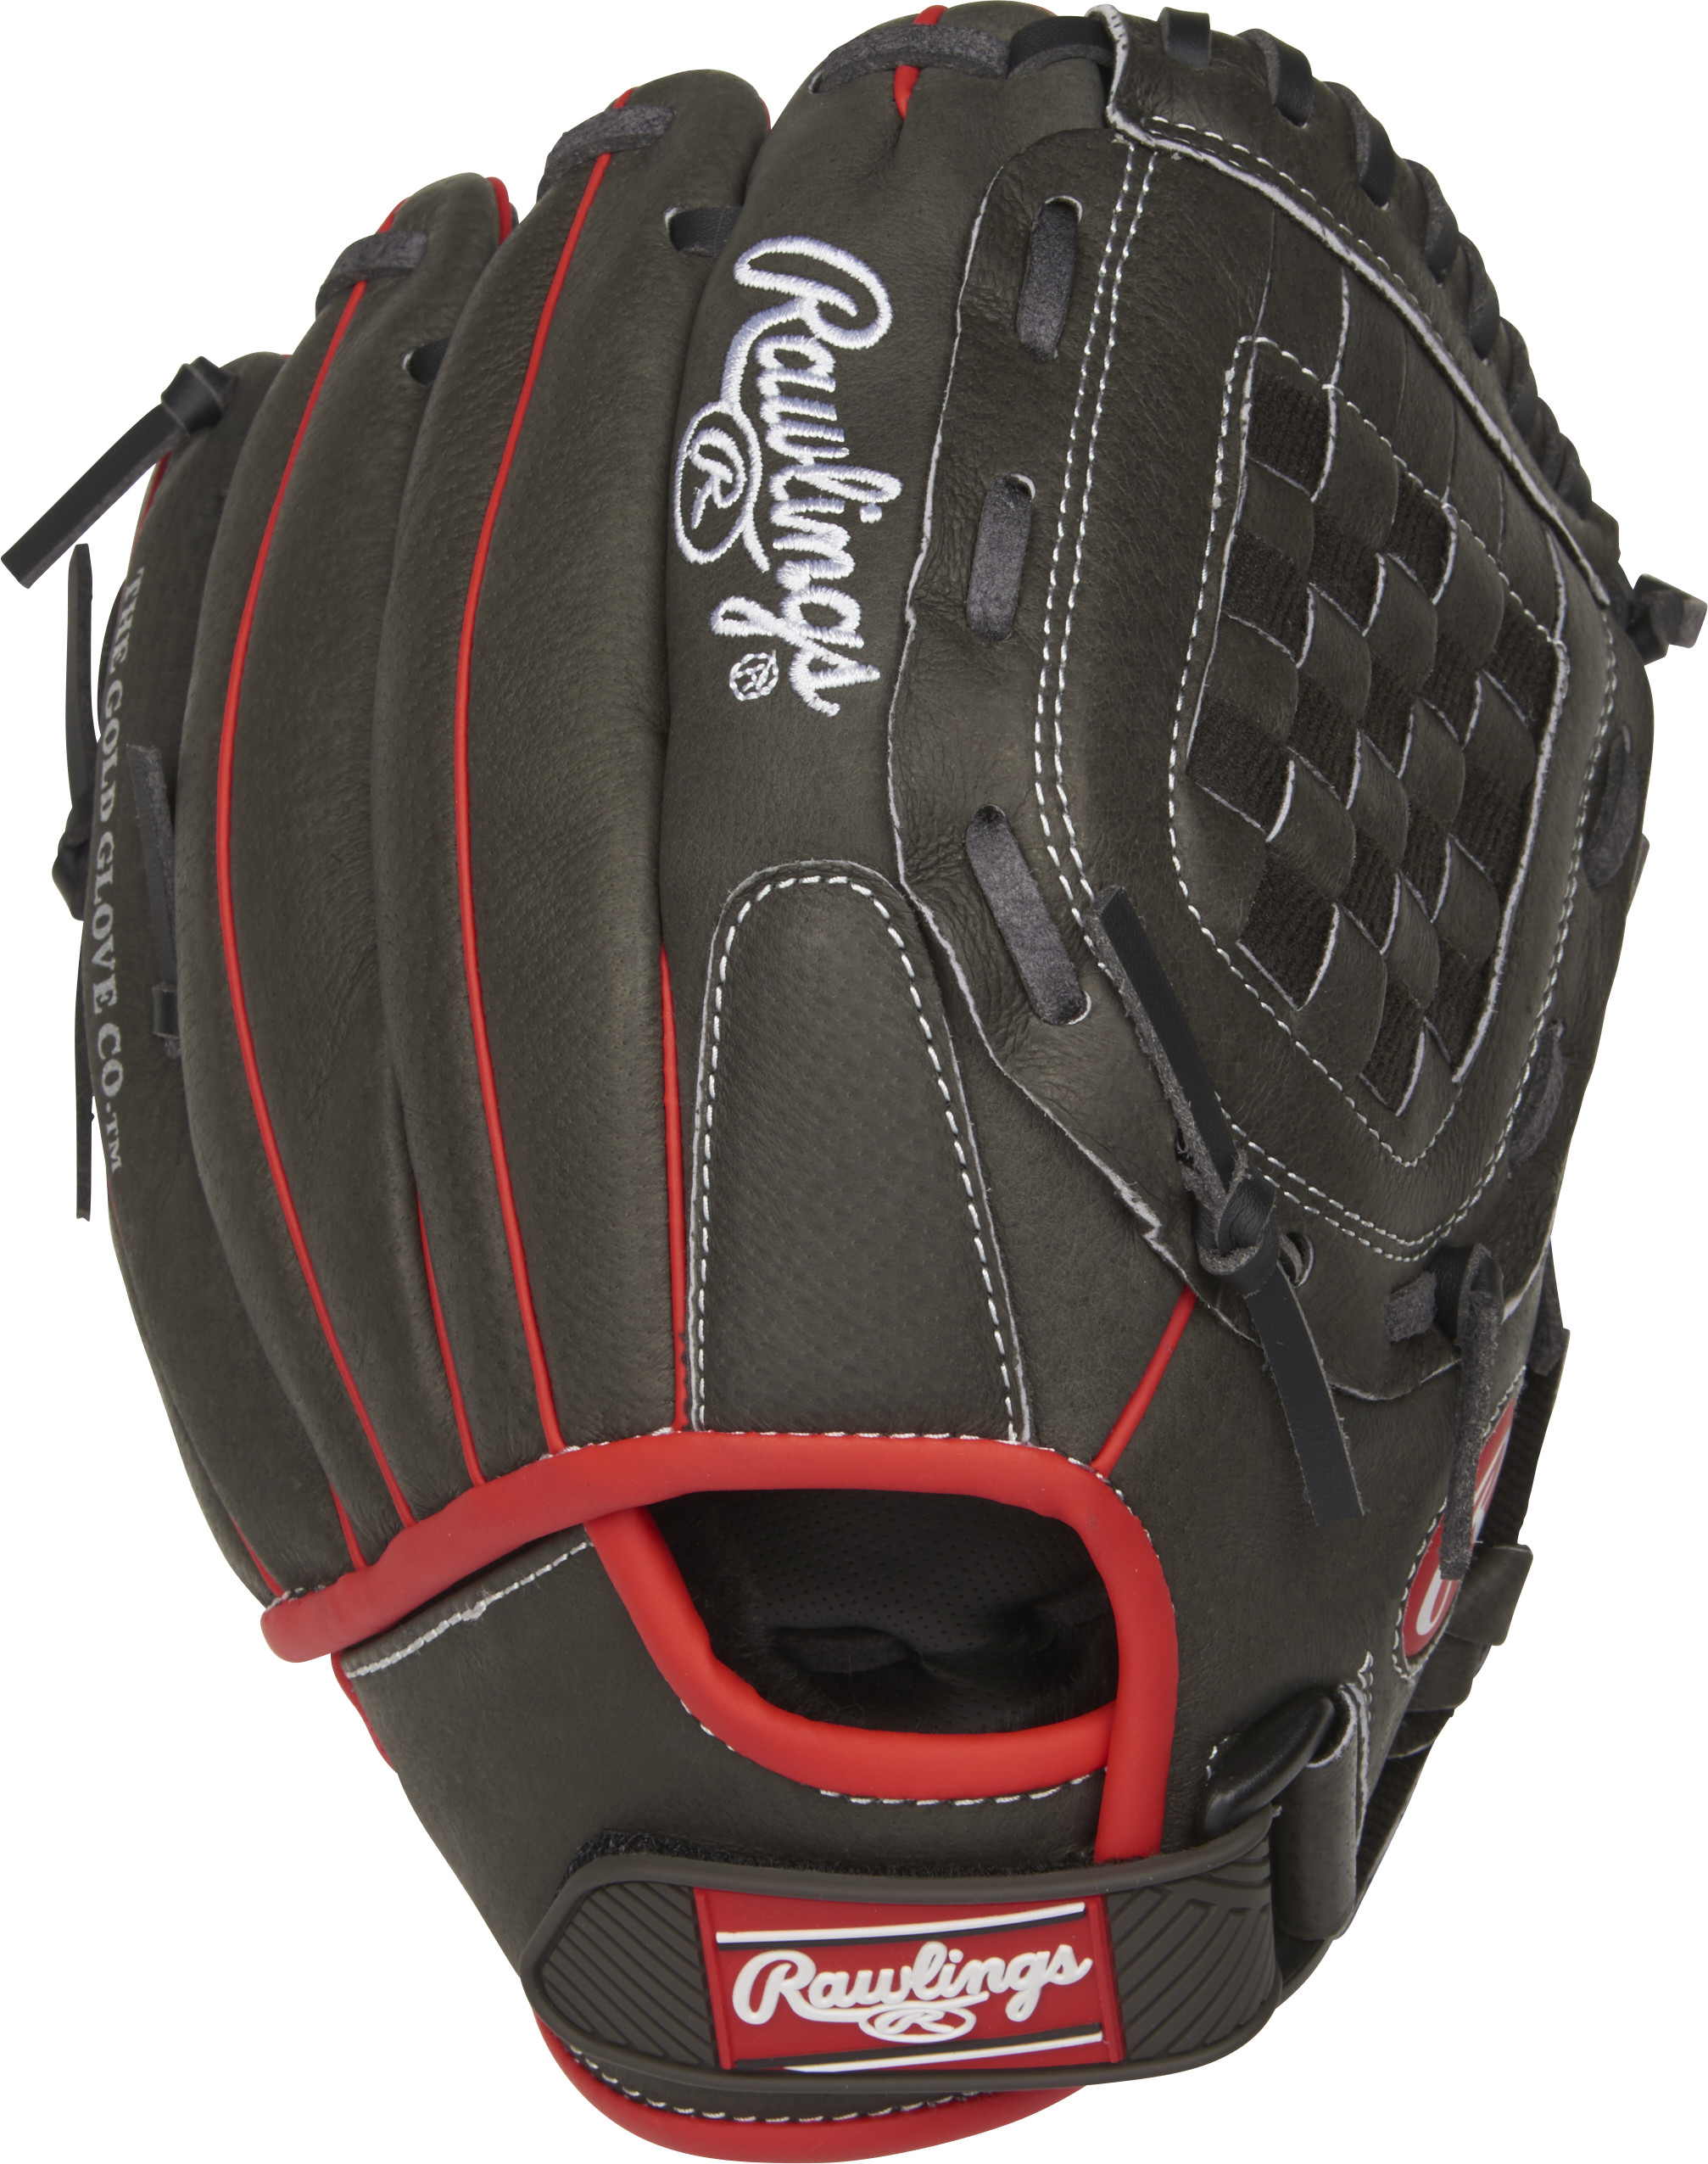 http://www.bestbatdeals.com/images/gloves/rawlings/MPL105DSB-2.jpg